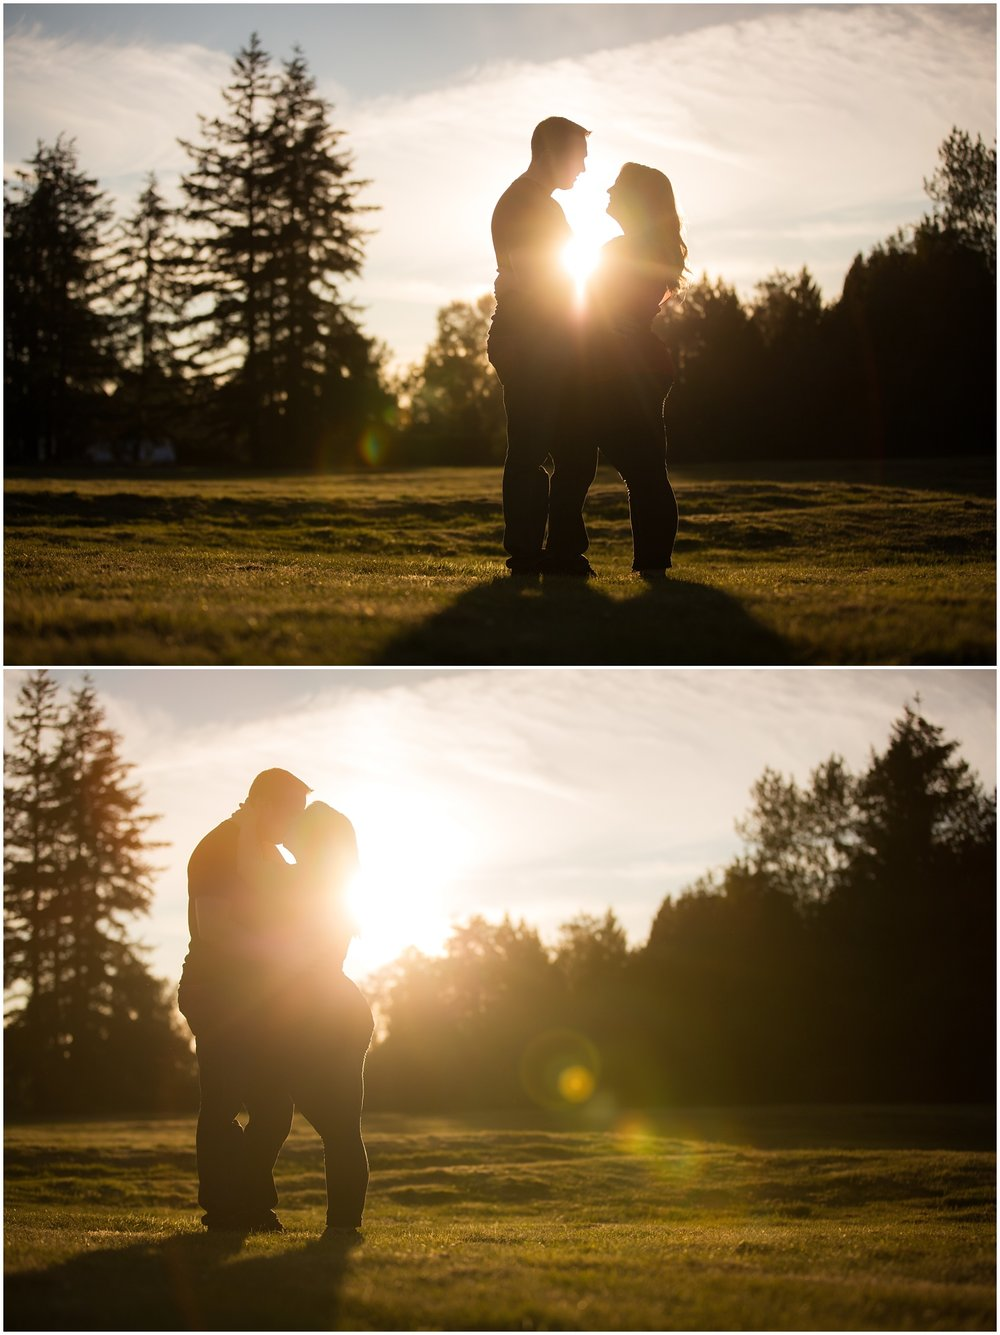 Amazing Day Photography - Langley Engagement Photographer - Compbell Valley Engagement Session (9).jpg